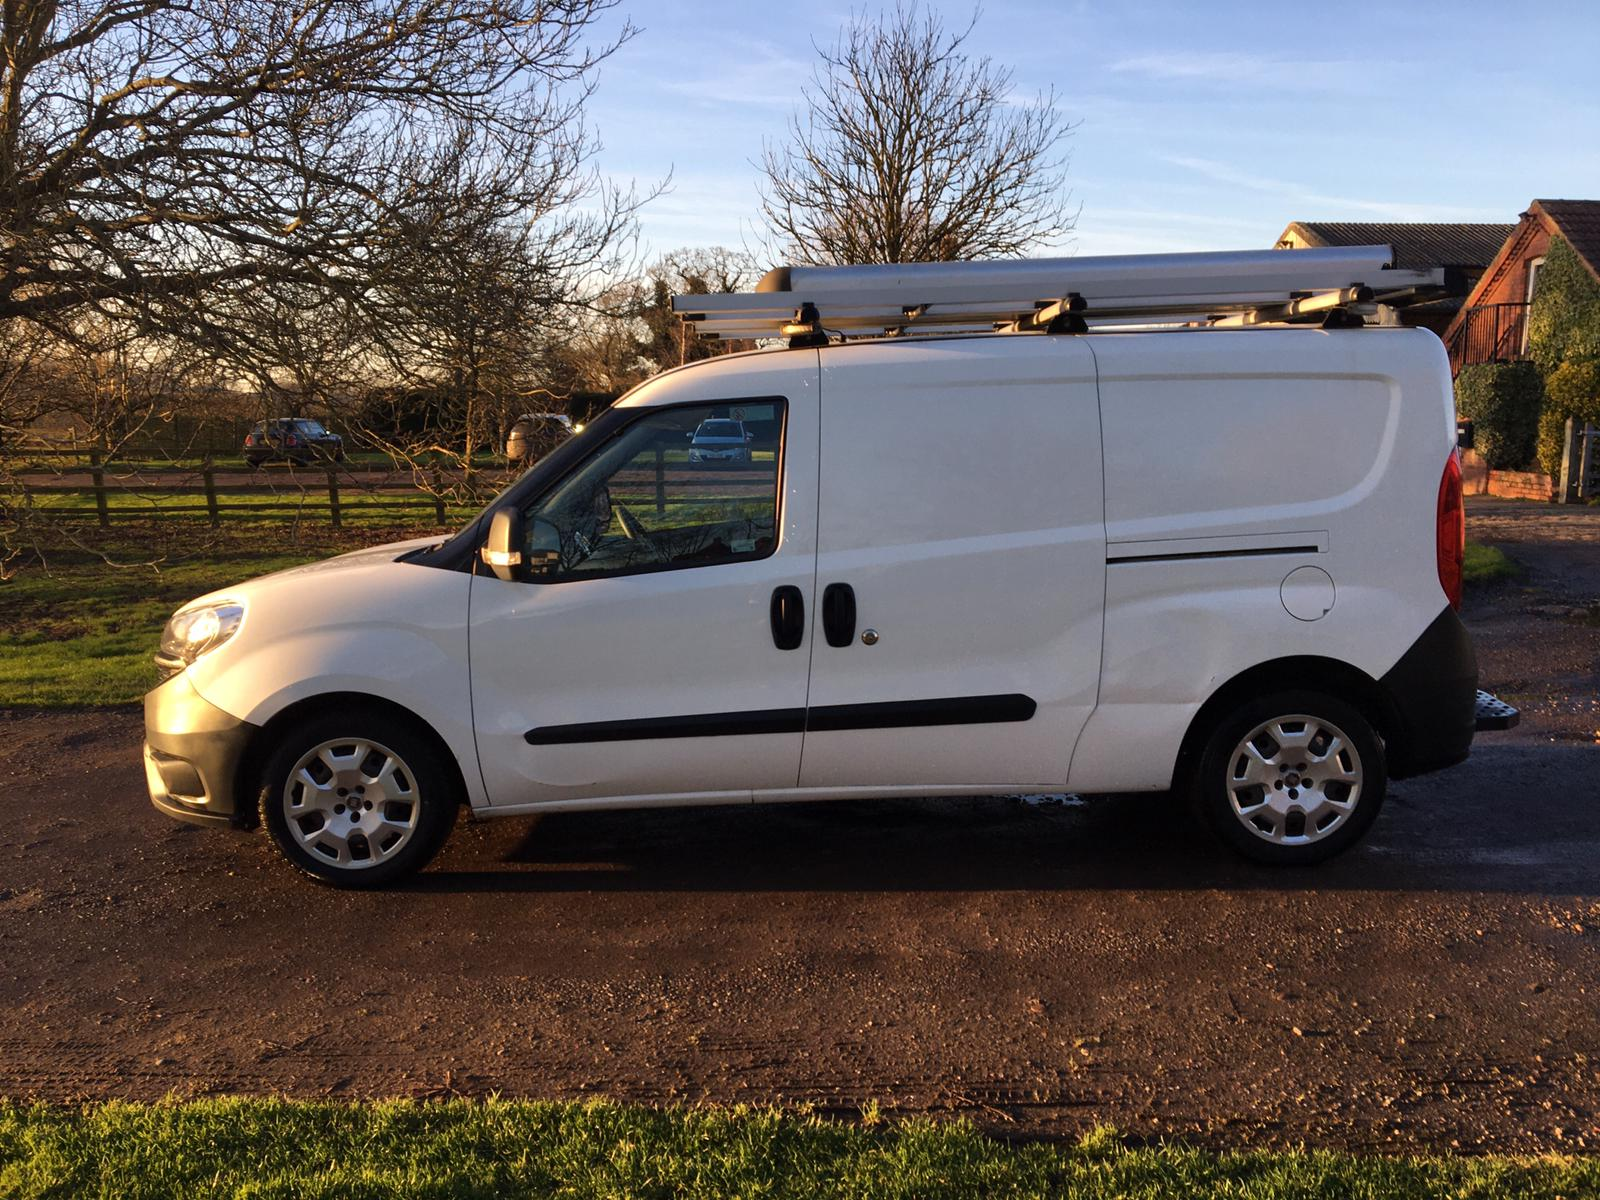 2015/65 REG FIAT DOBLO 16V MULTIJET 1.6 DIESEL WHITE PANEL VAN, SHOWING 0 FORMER KEEPERS *PLUS VAT* - Image 4 of 10